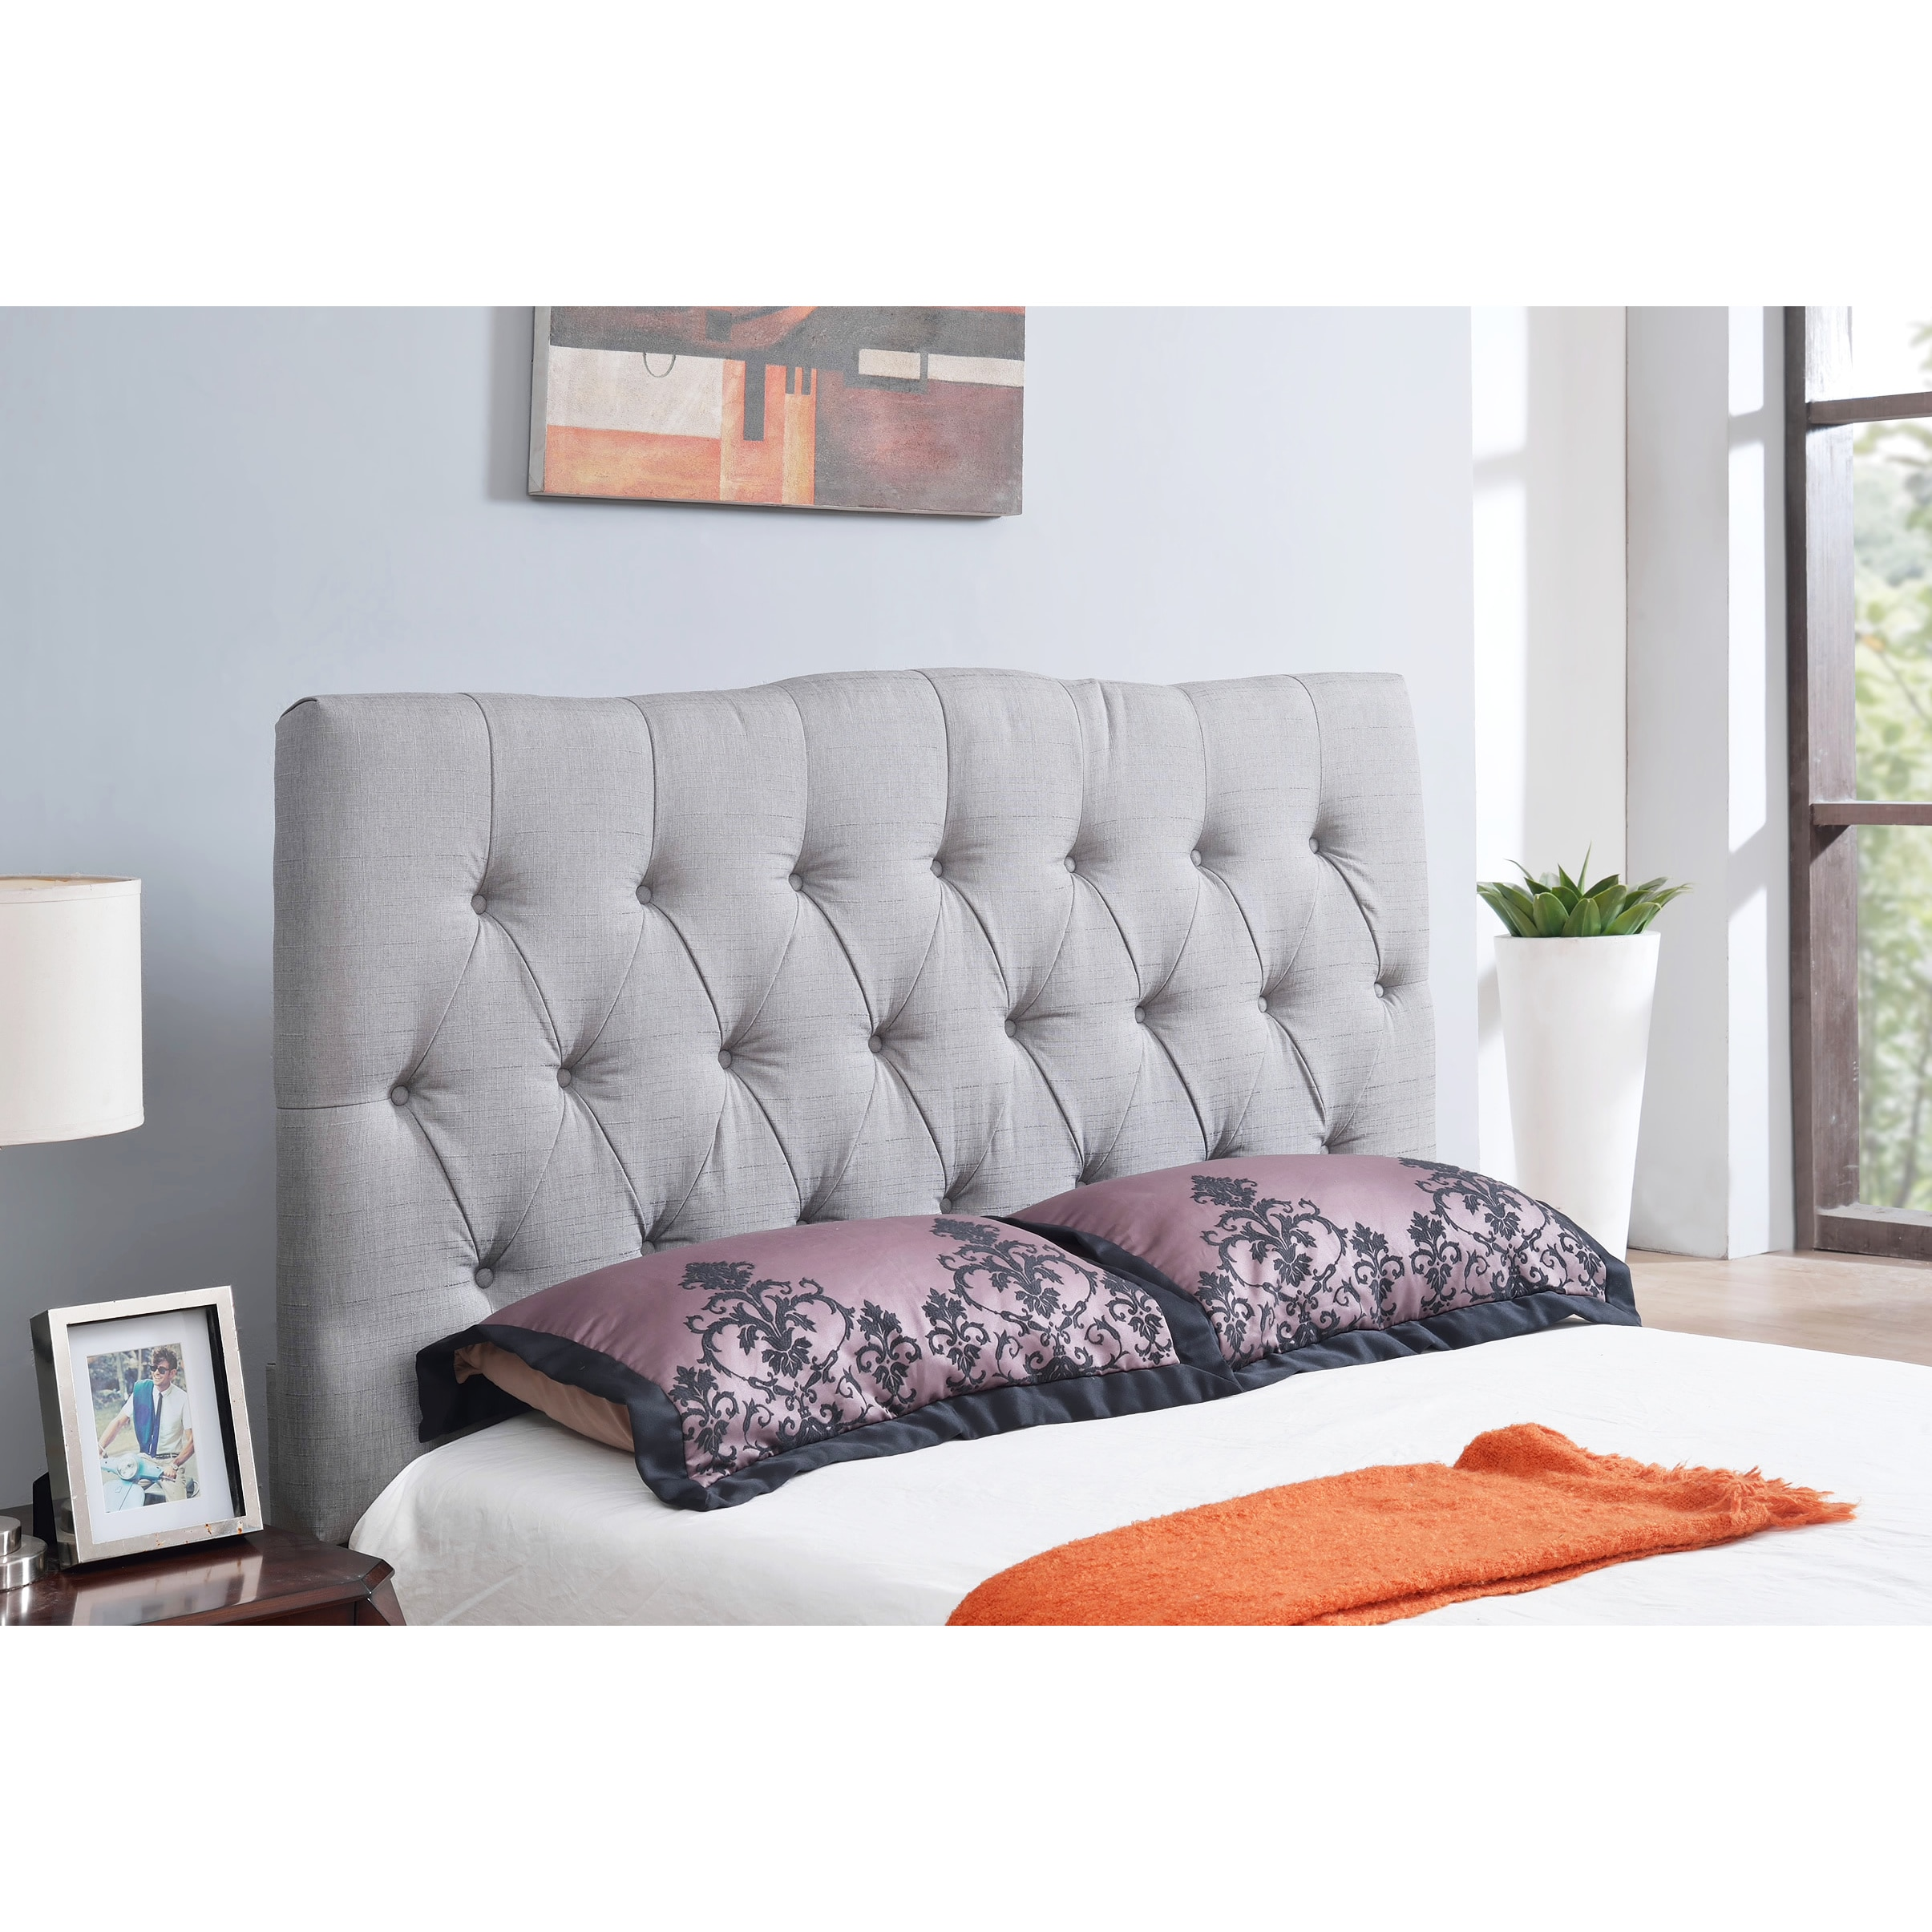 grey designers landscape bath rectangle solar tufted overstuffed graceful ga wells home contractorsinterior supplies for most piquant ojai black designer twin headboard queen endearing design also wondrous energy bed as lear charcoal